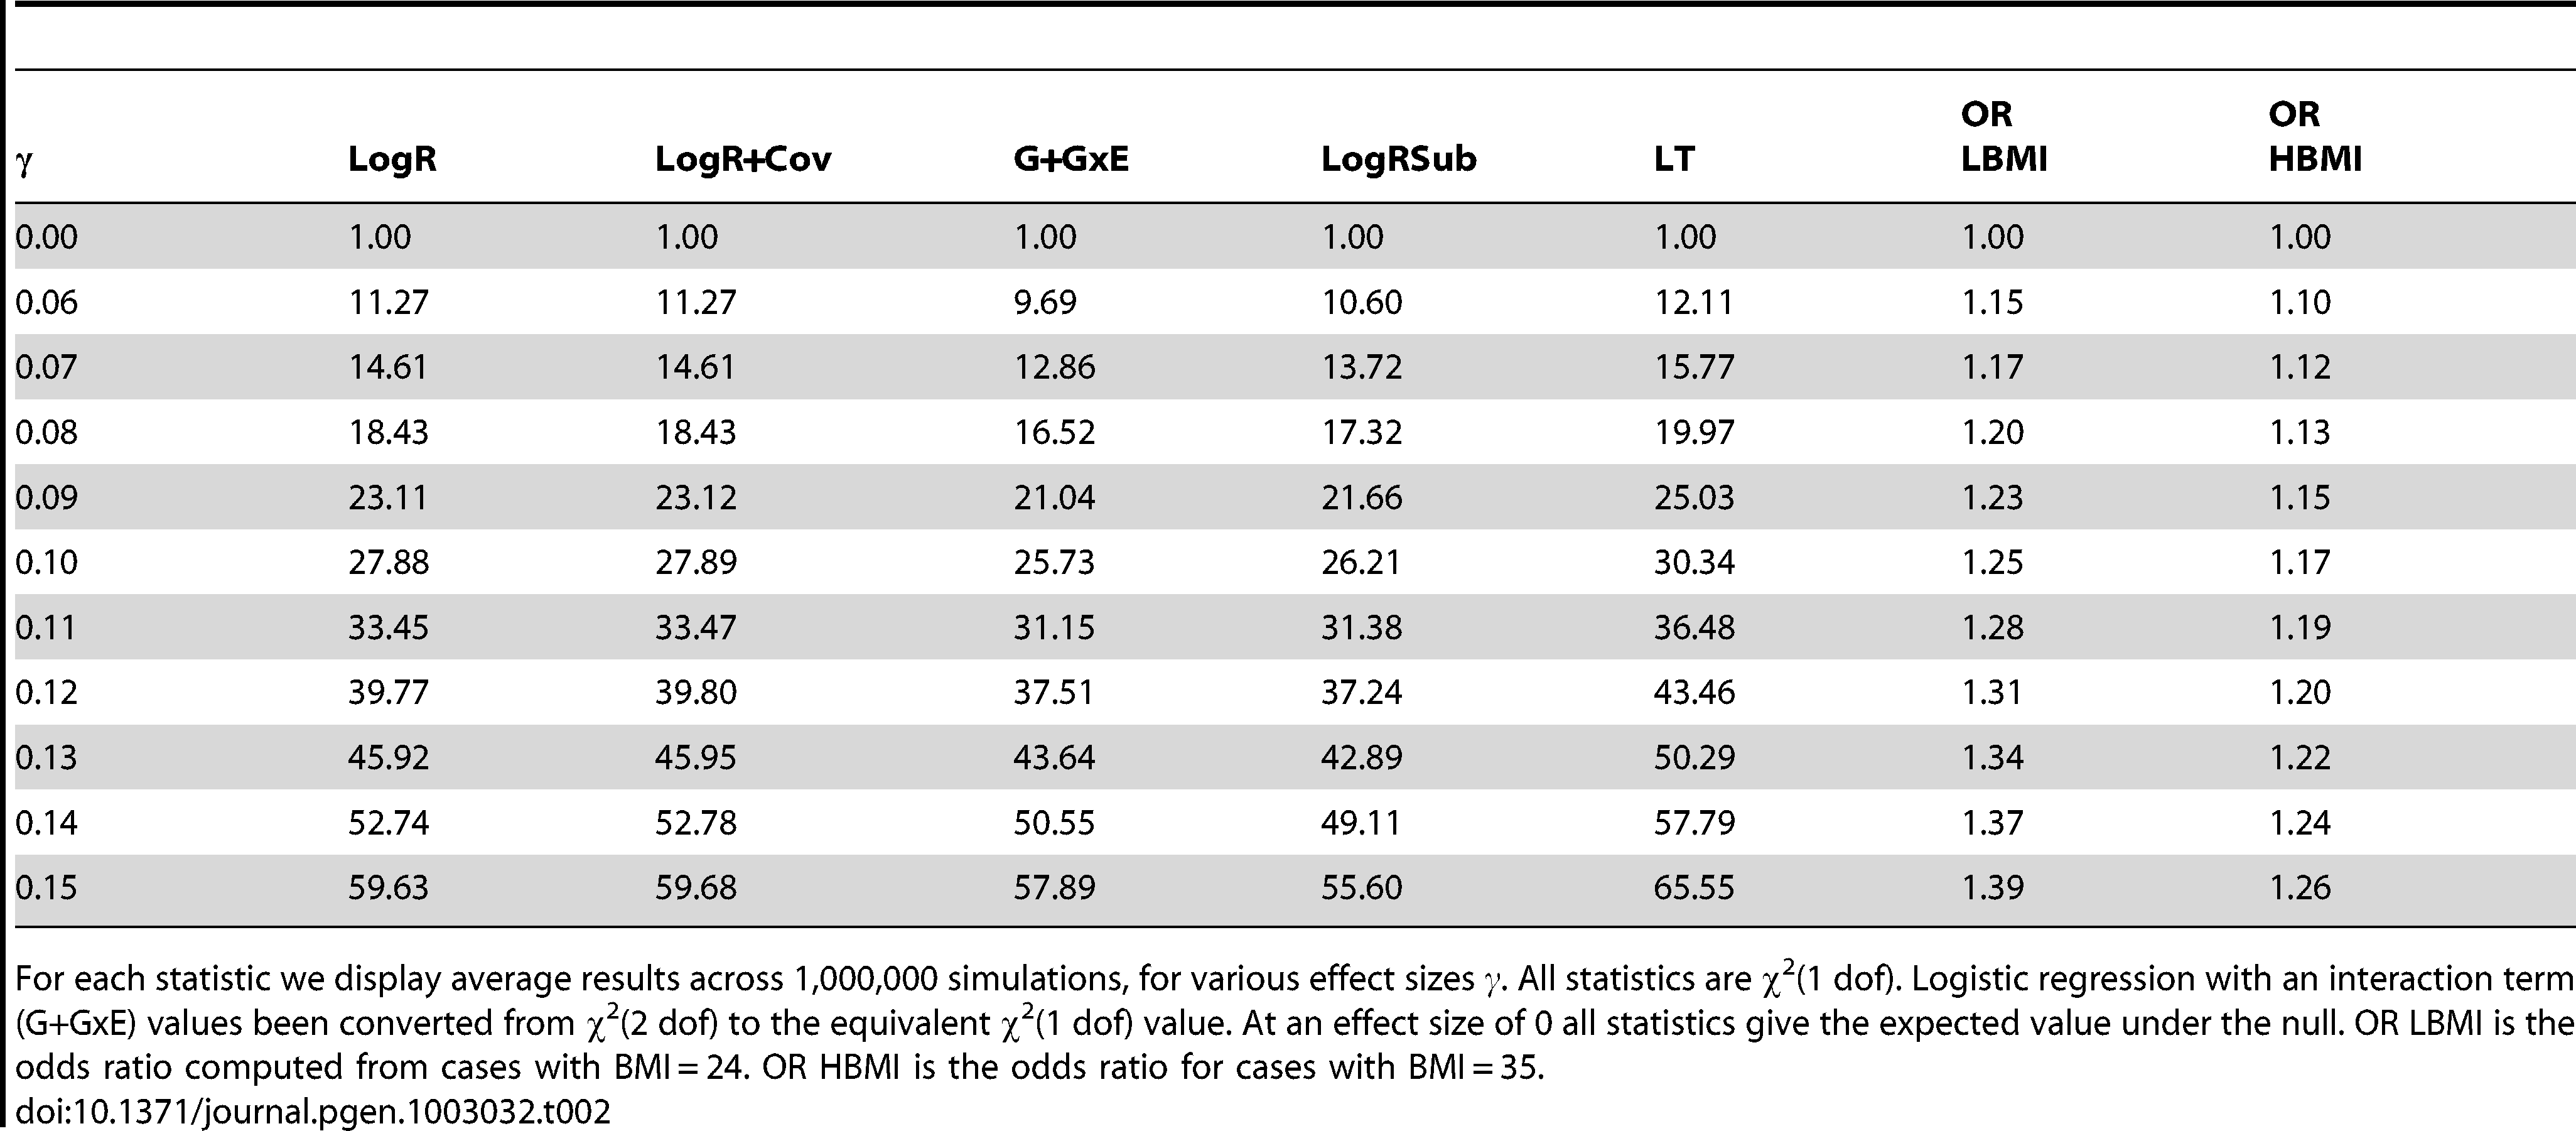 Average χ<sup>2</sup> statistics for LT versus other approaches in simulated data.